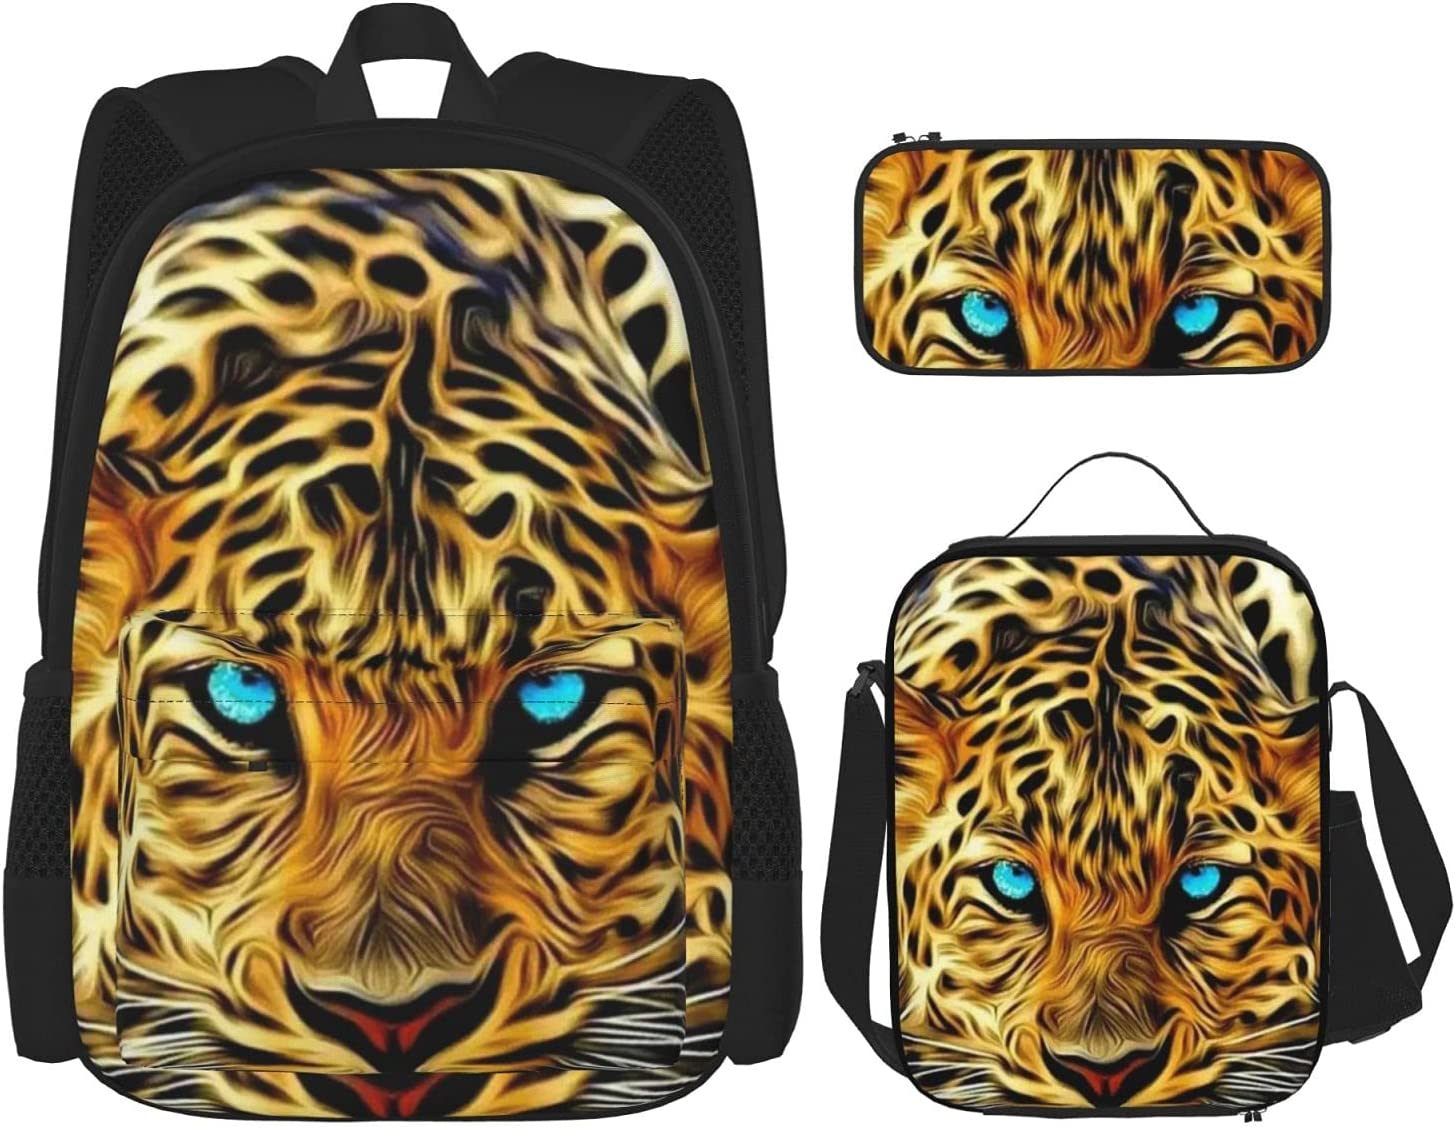 Leopard With Blue Eyes Wild Animal Teens Print For Backpack Boys Sales of Ranking TOP10 SALE items from new works